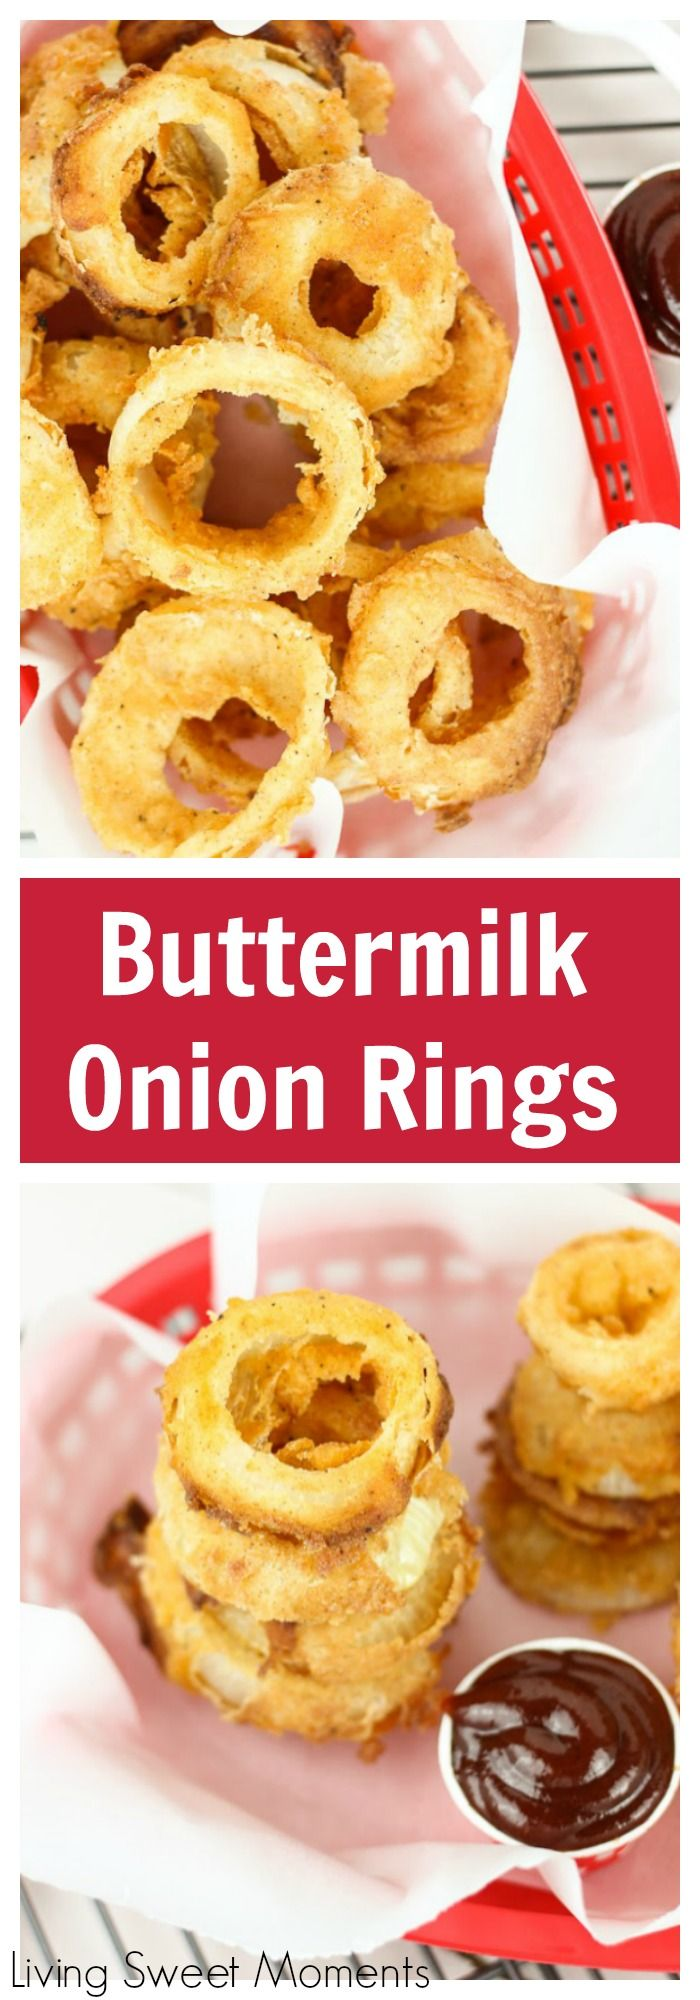 These Easy Buttermilk Onion Rings are battered and fried to perfection and make a delicious side dish to any meal. Serve with a tasty dipping sauce. More on livingsweetmoments.com